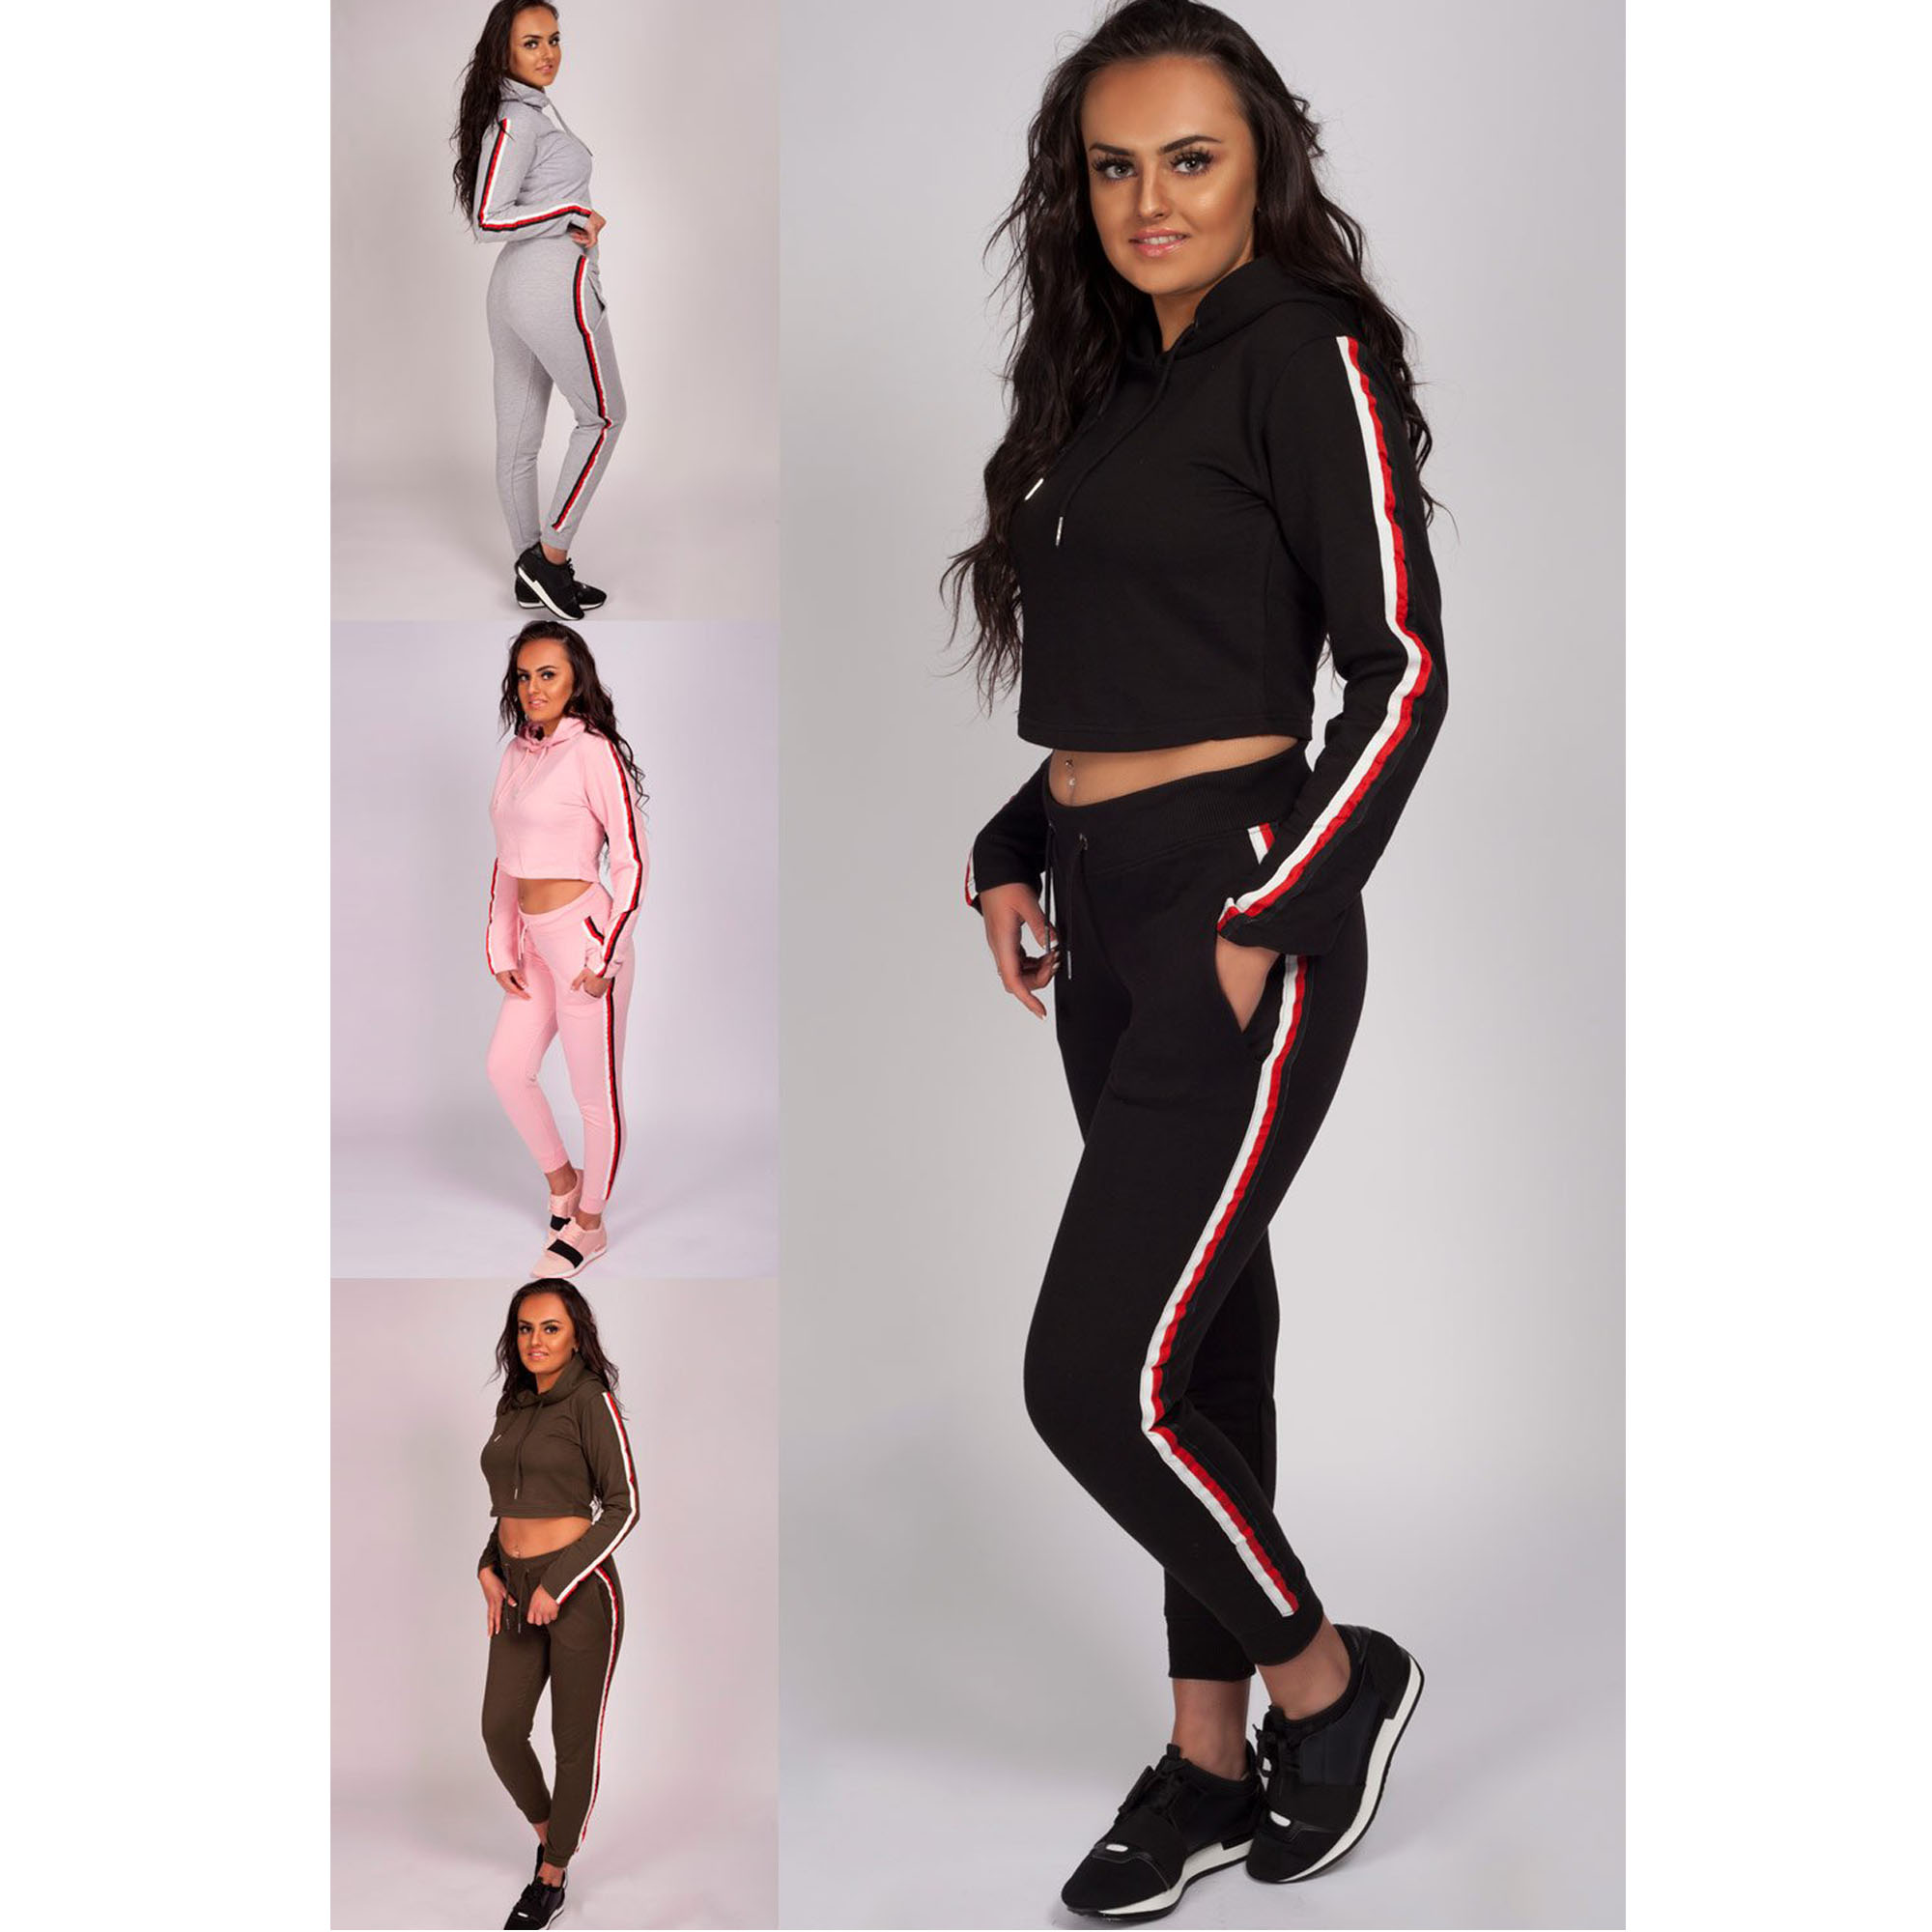 Women's Tracksuit Lounge Wear Hooded Knitted Two Piece Jogging Bottoms Trouser